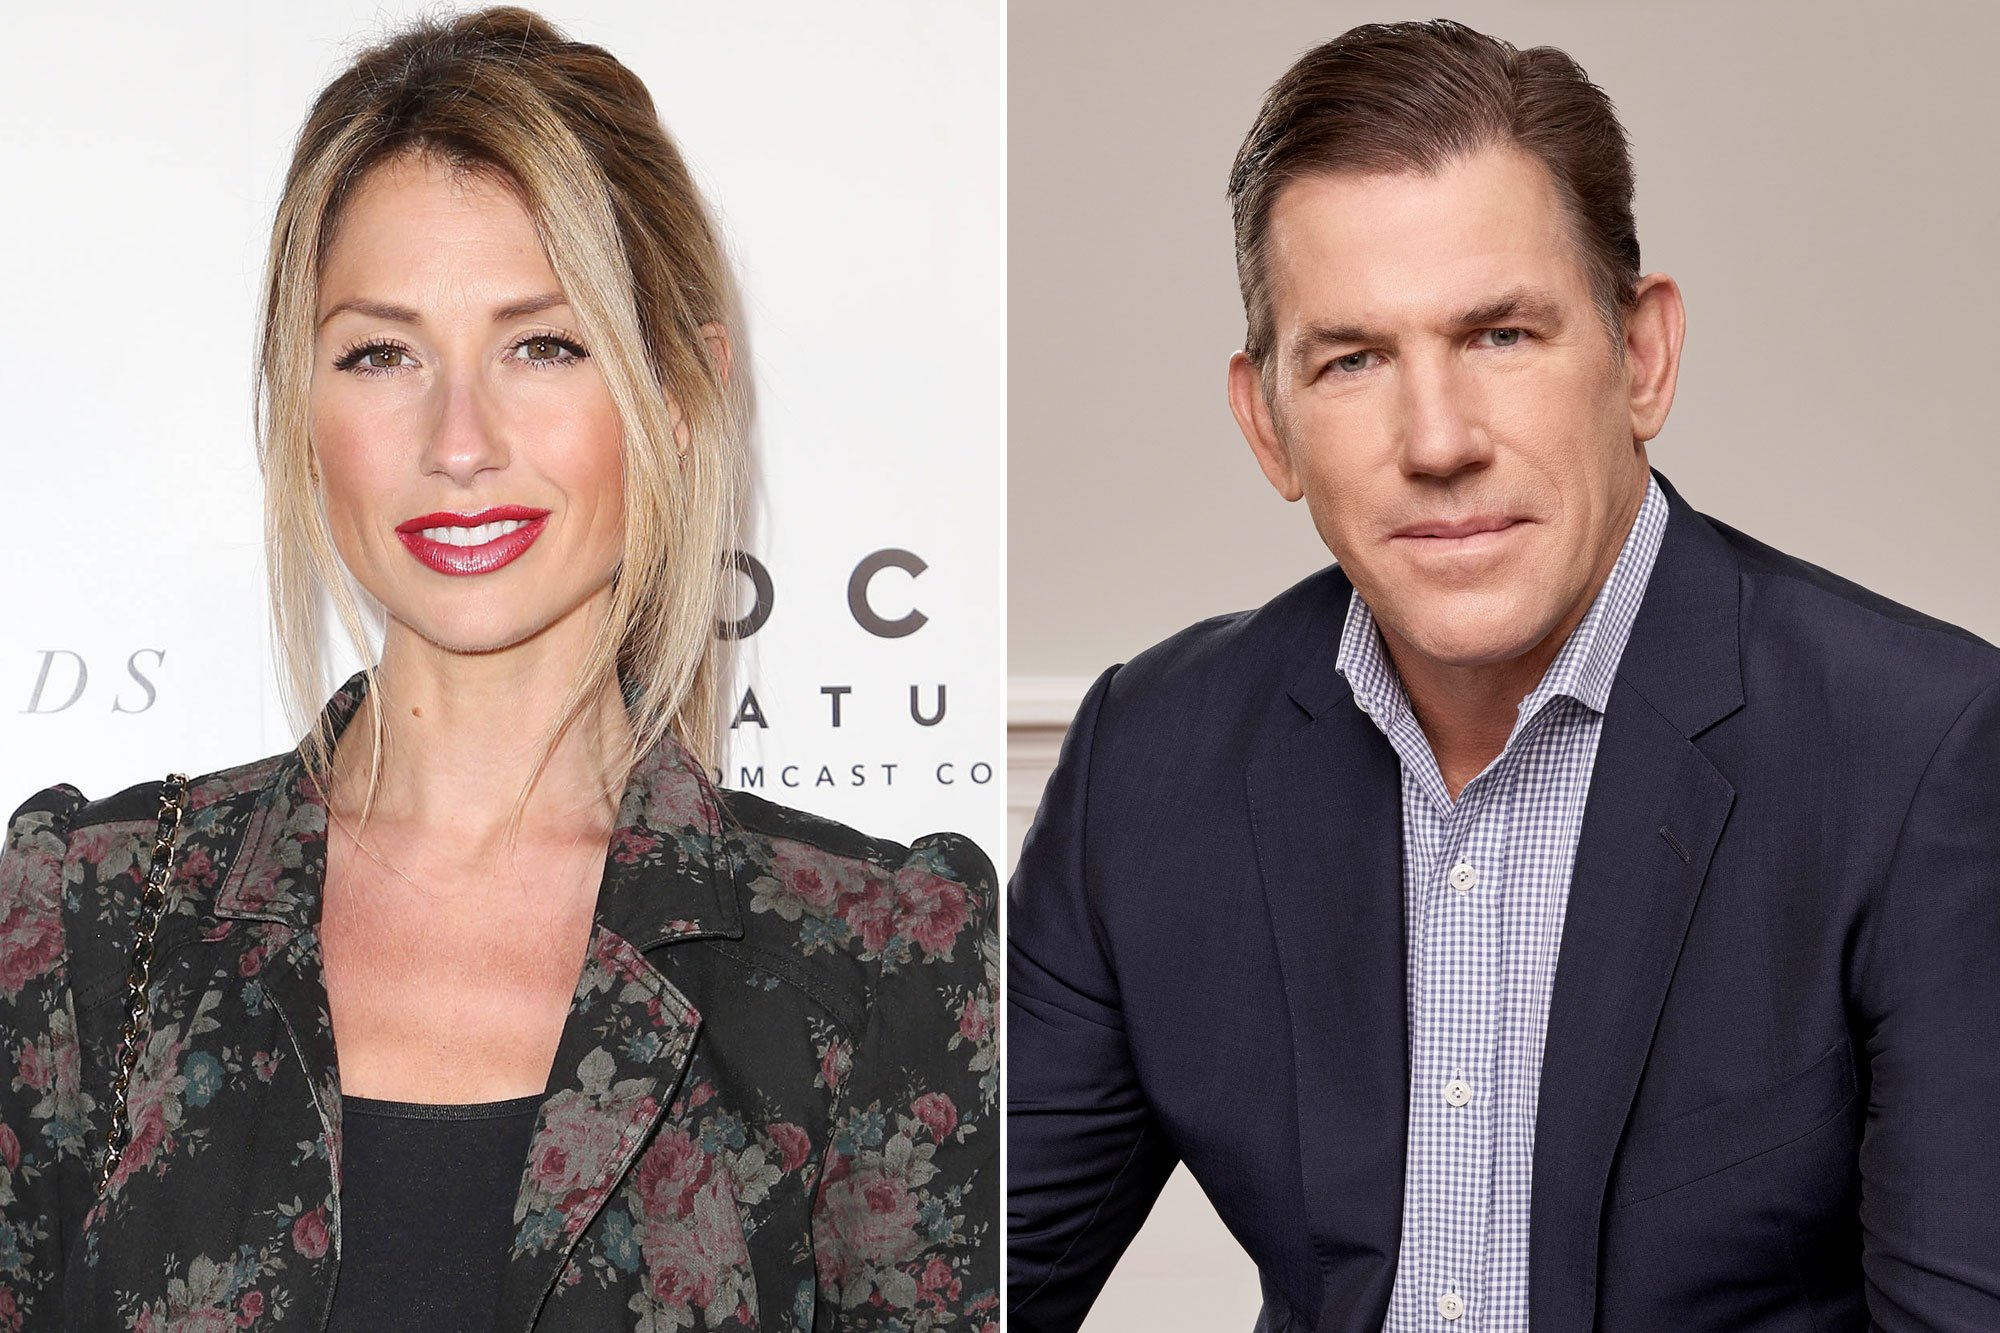 Ashley Jacobs Hopes '34 Is a Lot Better than 33' Amid Ex Thomas Ravenel's Legal Troubles